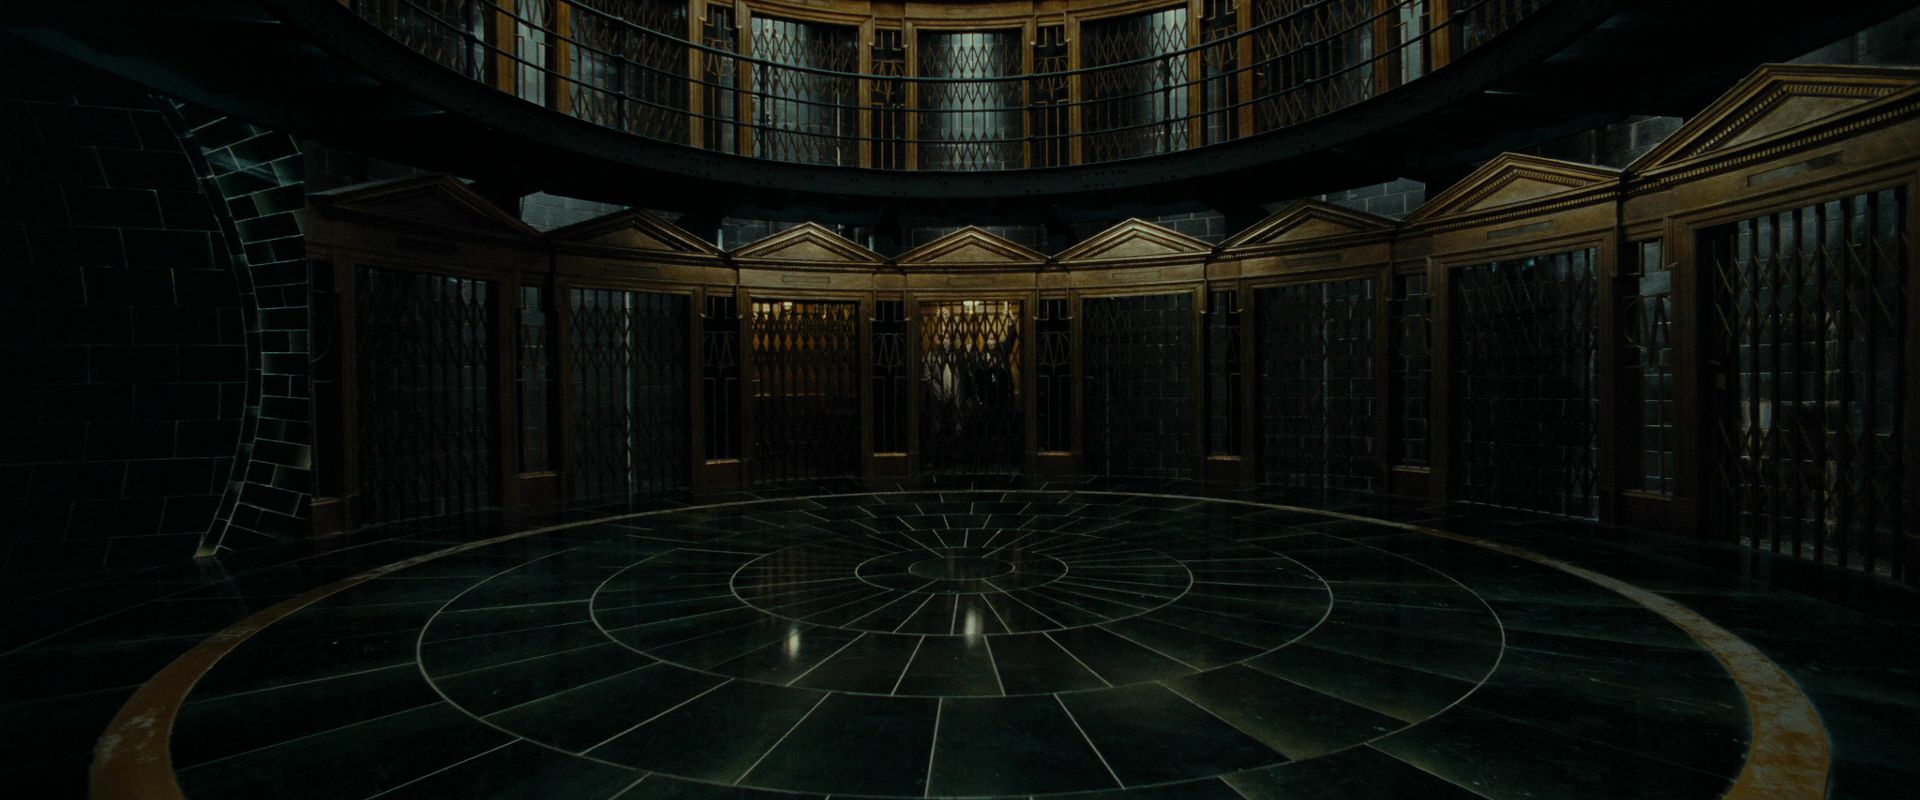 Ministry of Magic lifts - Harry Potter Wiki